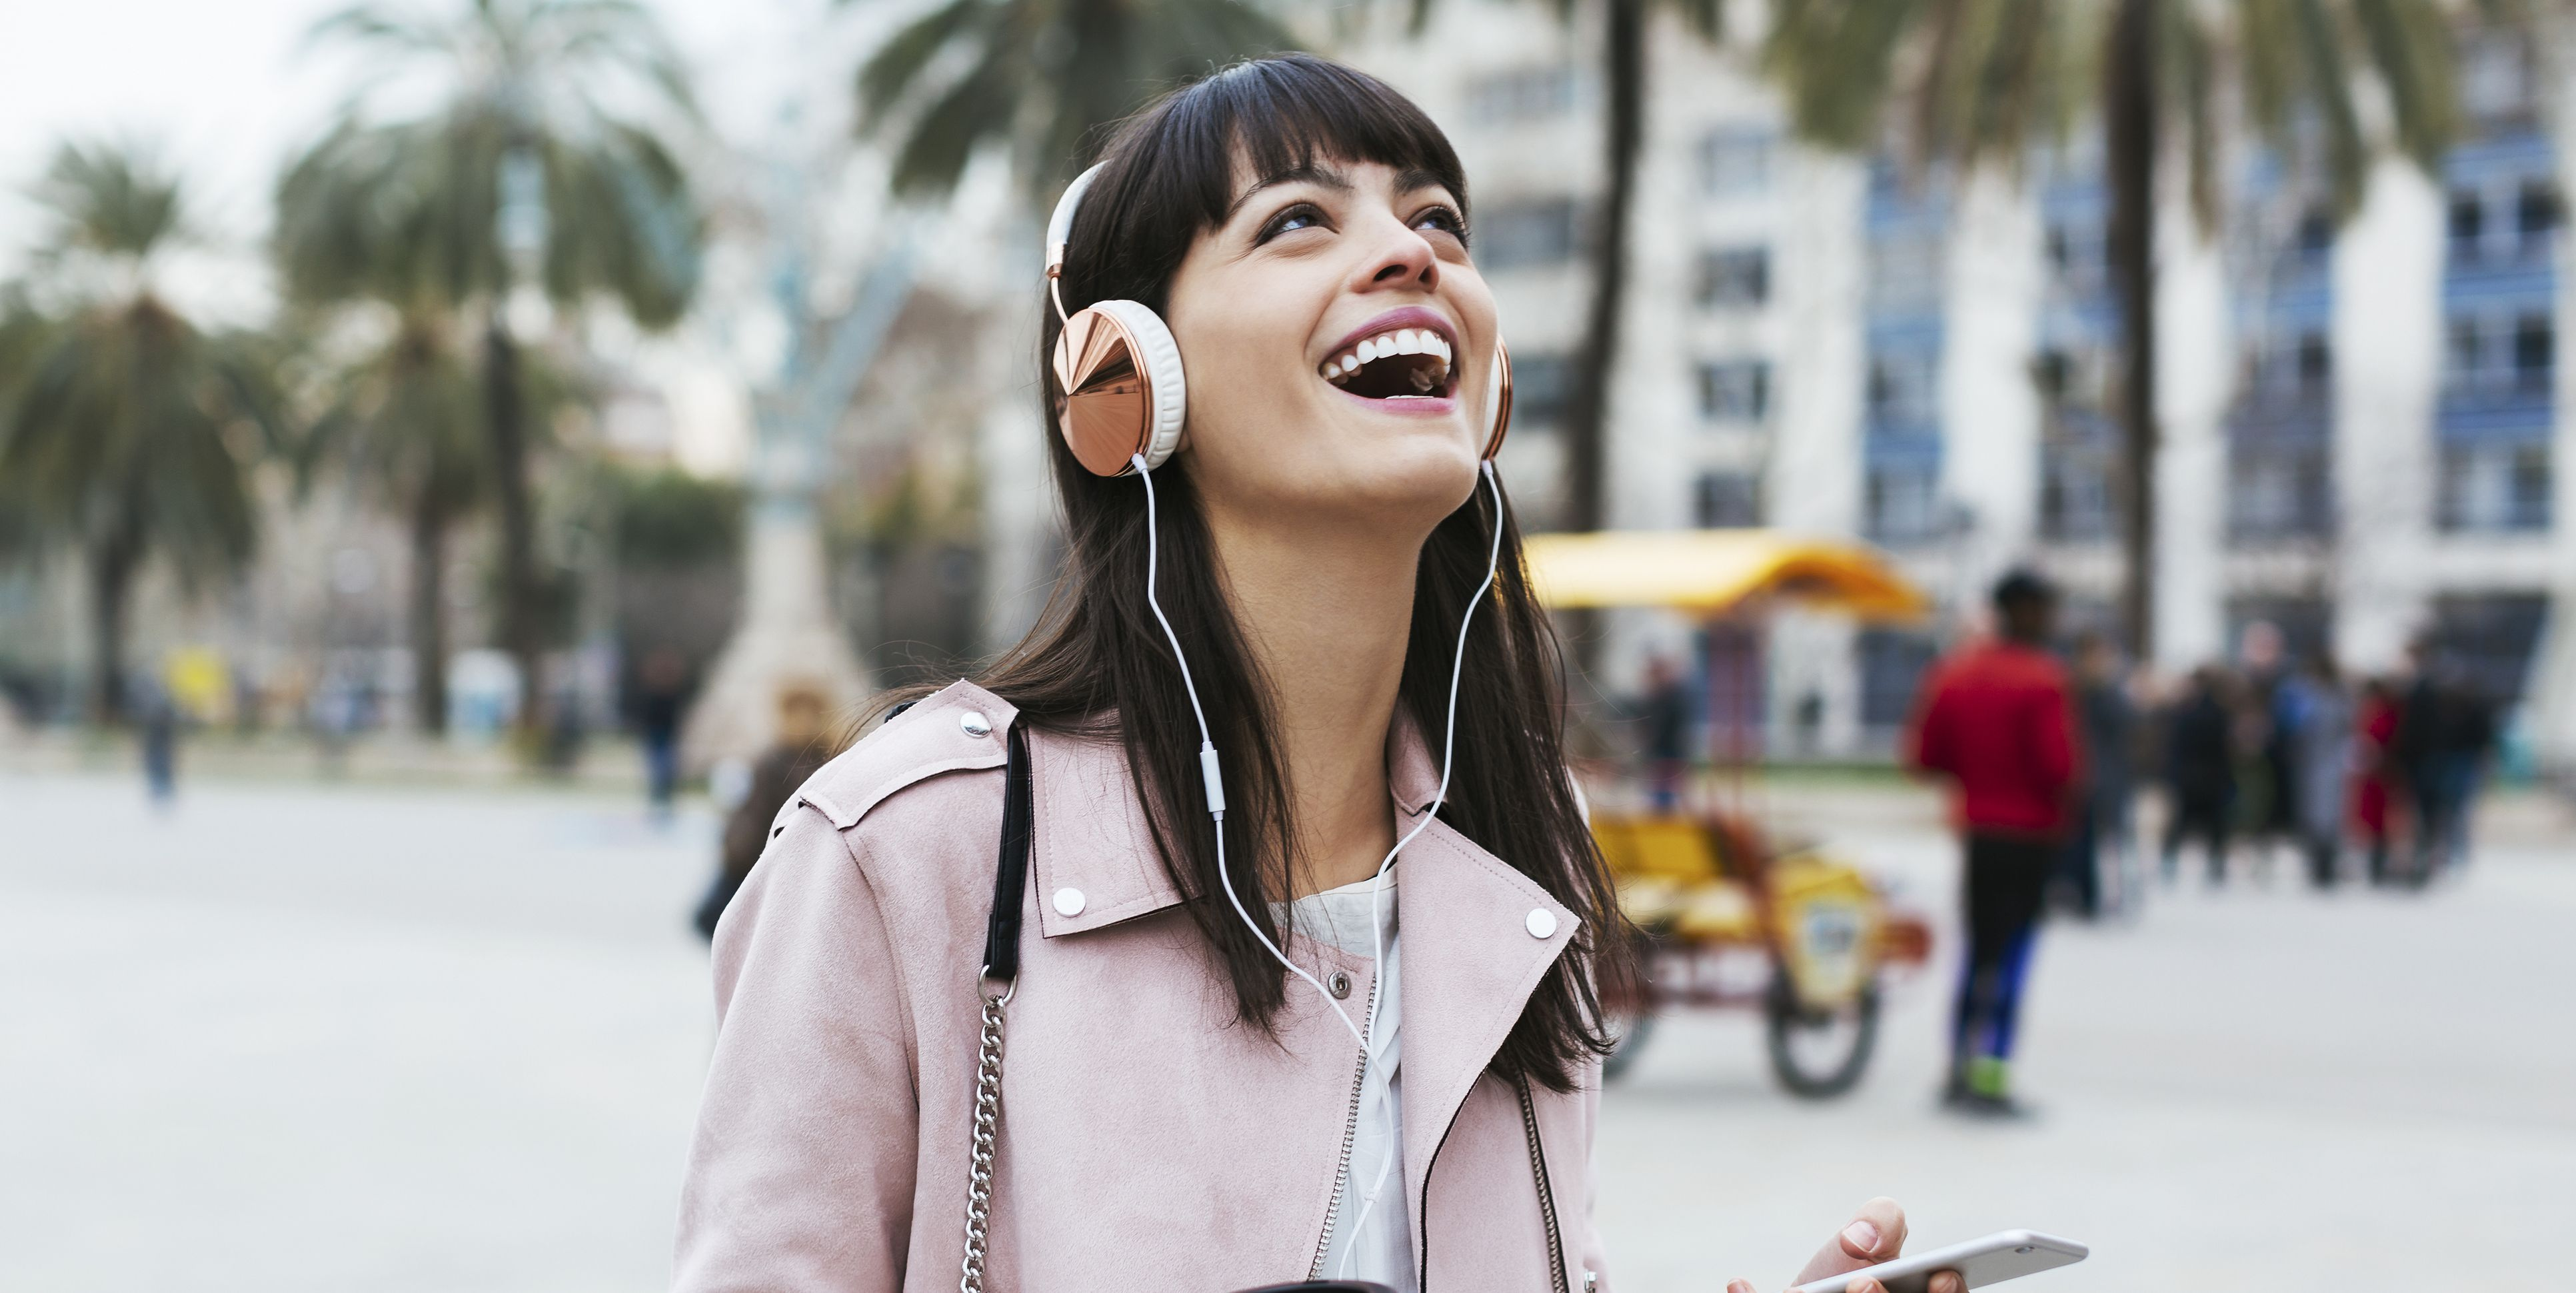 Spain, Barcelona, laughing woman with coffee, cell phone and headphones in the city